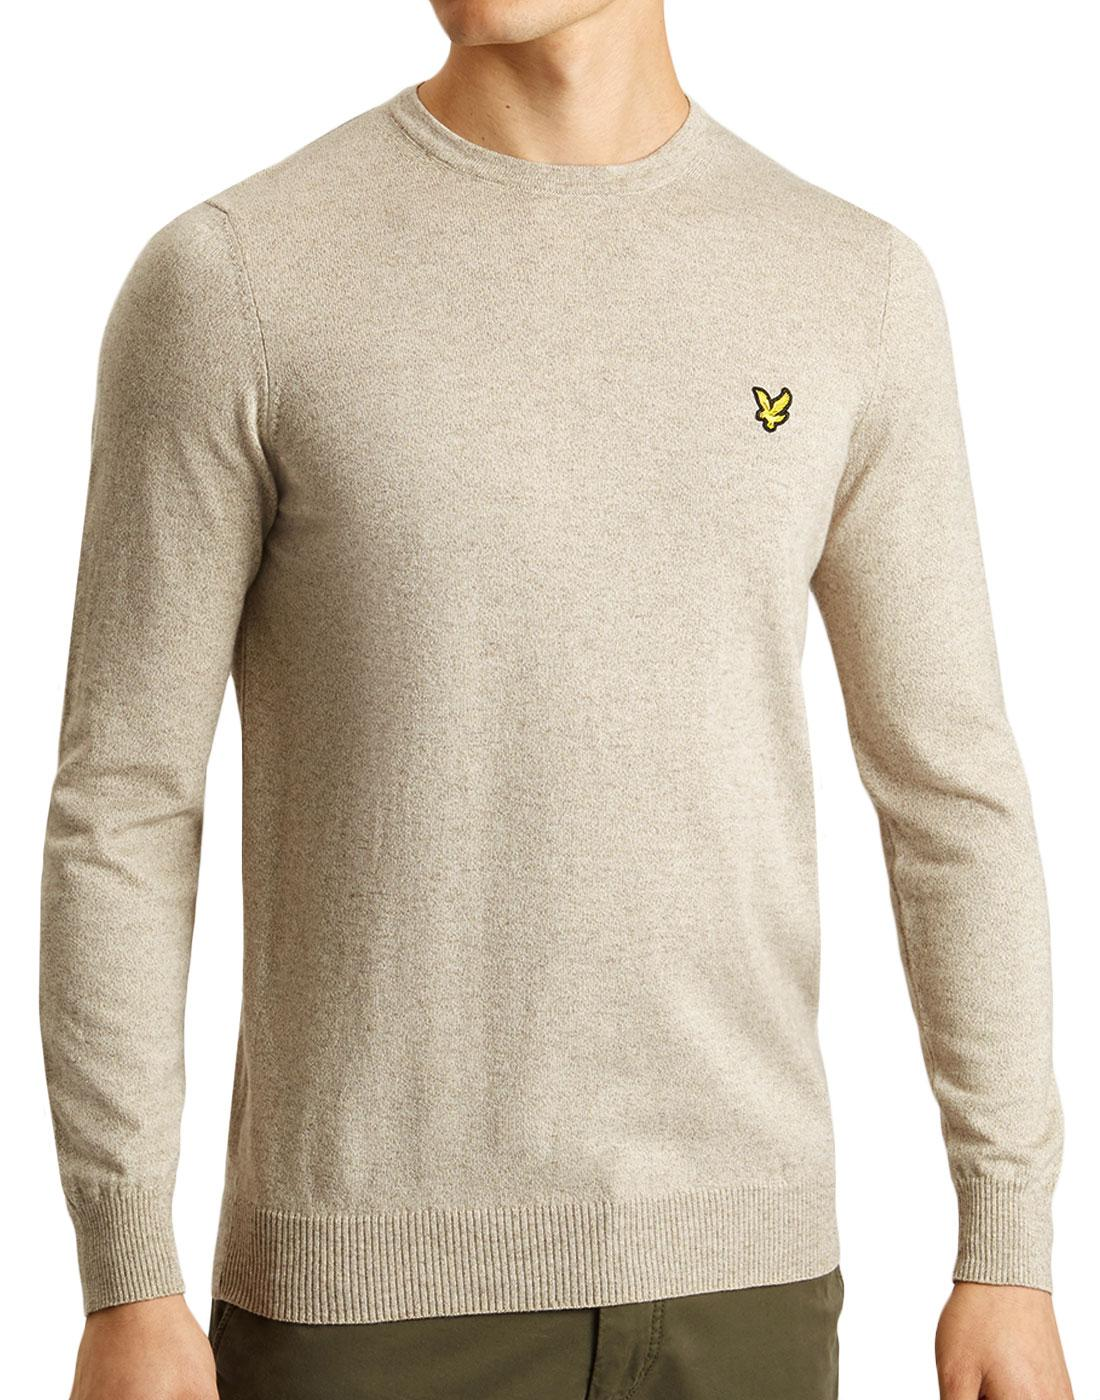 LYLE & SCOTT Mod Cotton Merino Knit Jumper BISCUIT